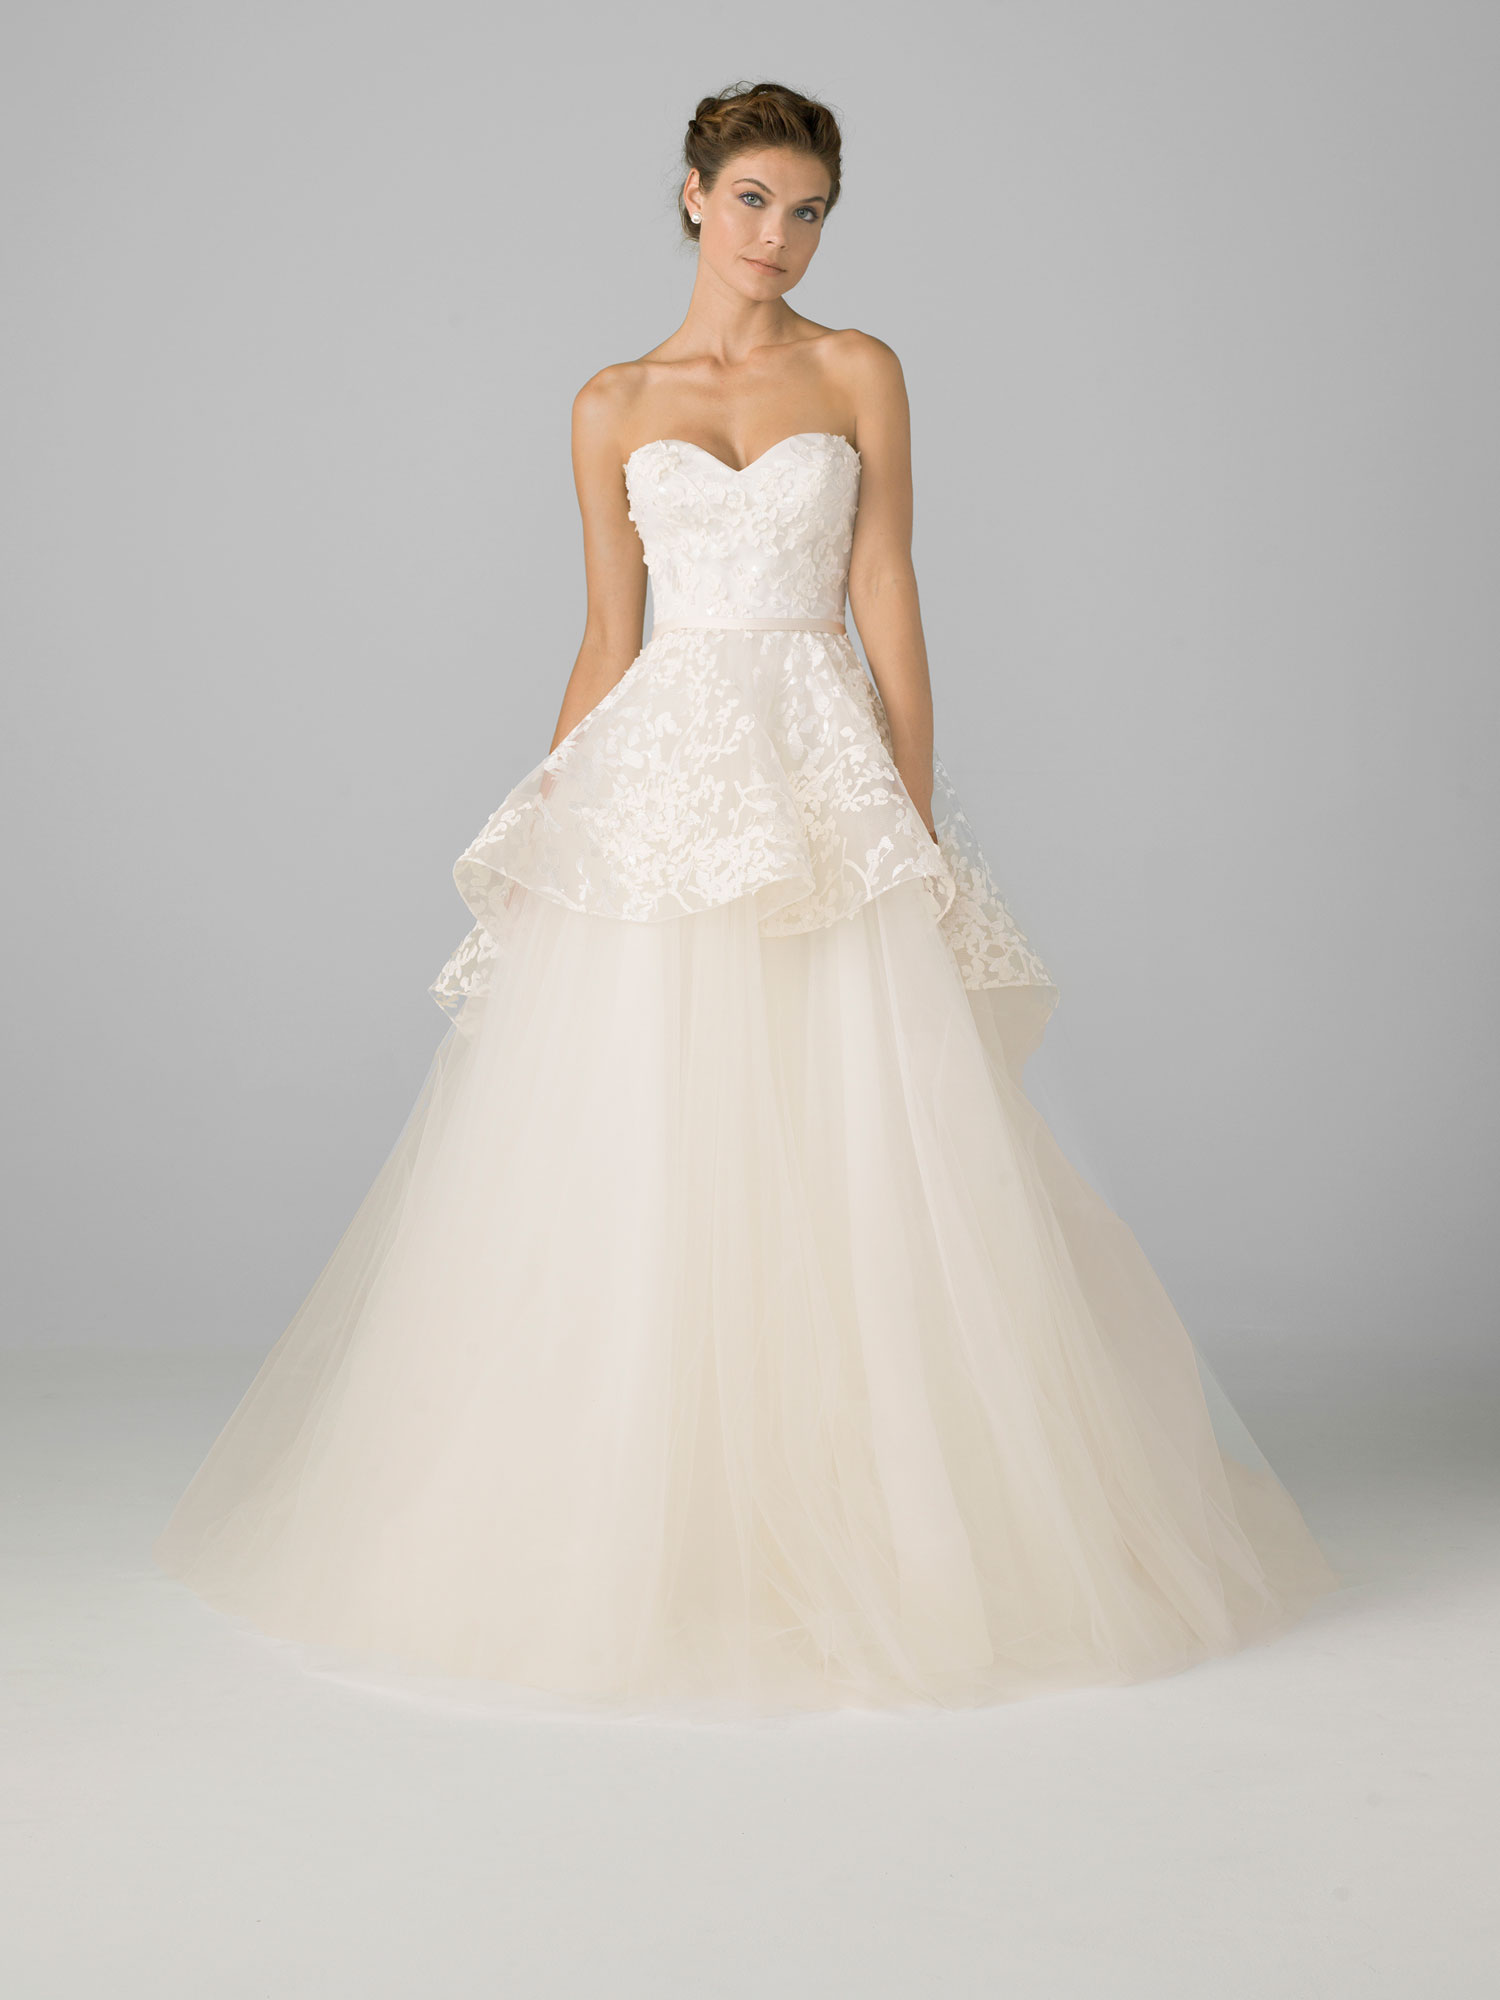 Wedding Dresses Bridal Gowns With Sweetheart Necklines Inside